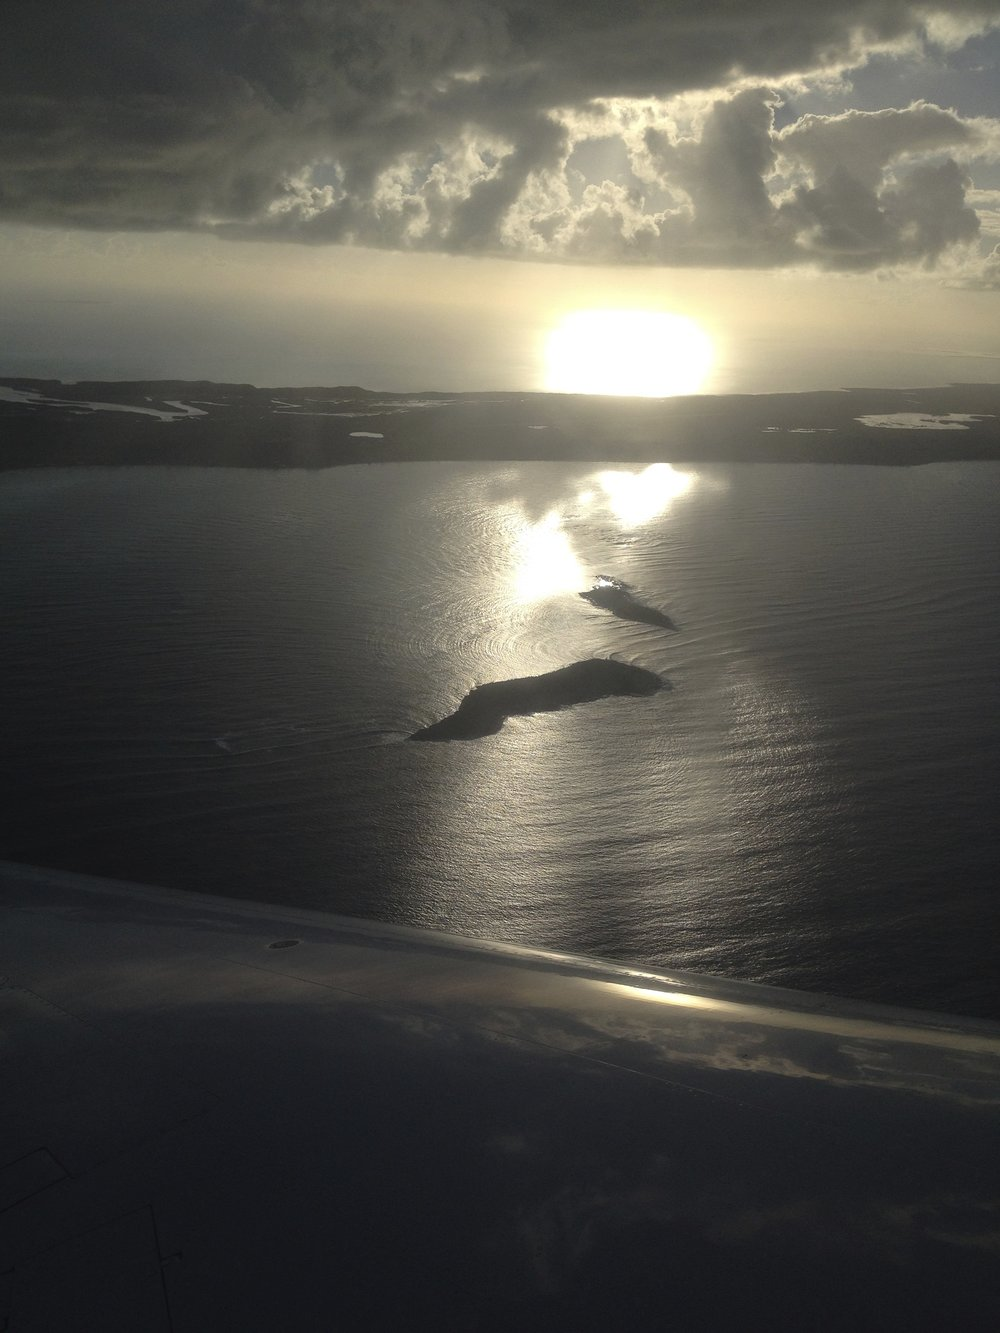 Can see Flow from above. The wave flow around an island. Both most Flow is invisible on the airplane wing and the breeze below. Even the tidal flow is invisible. Most Flow is.